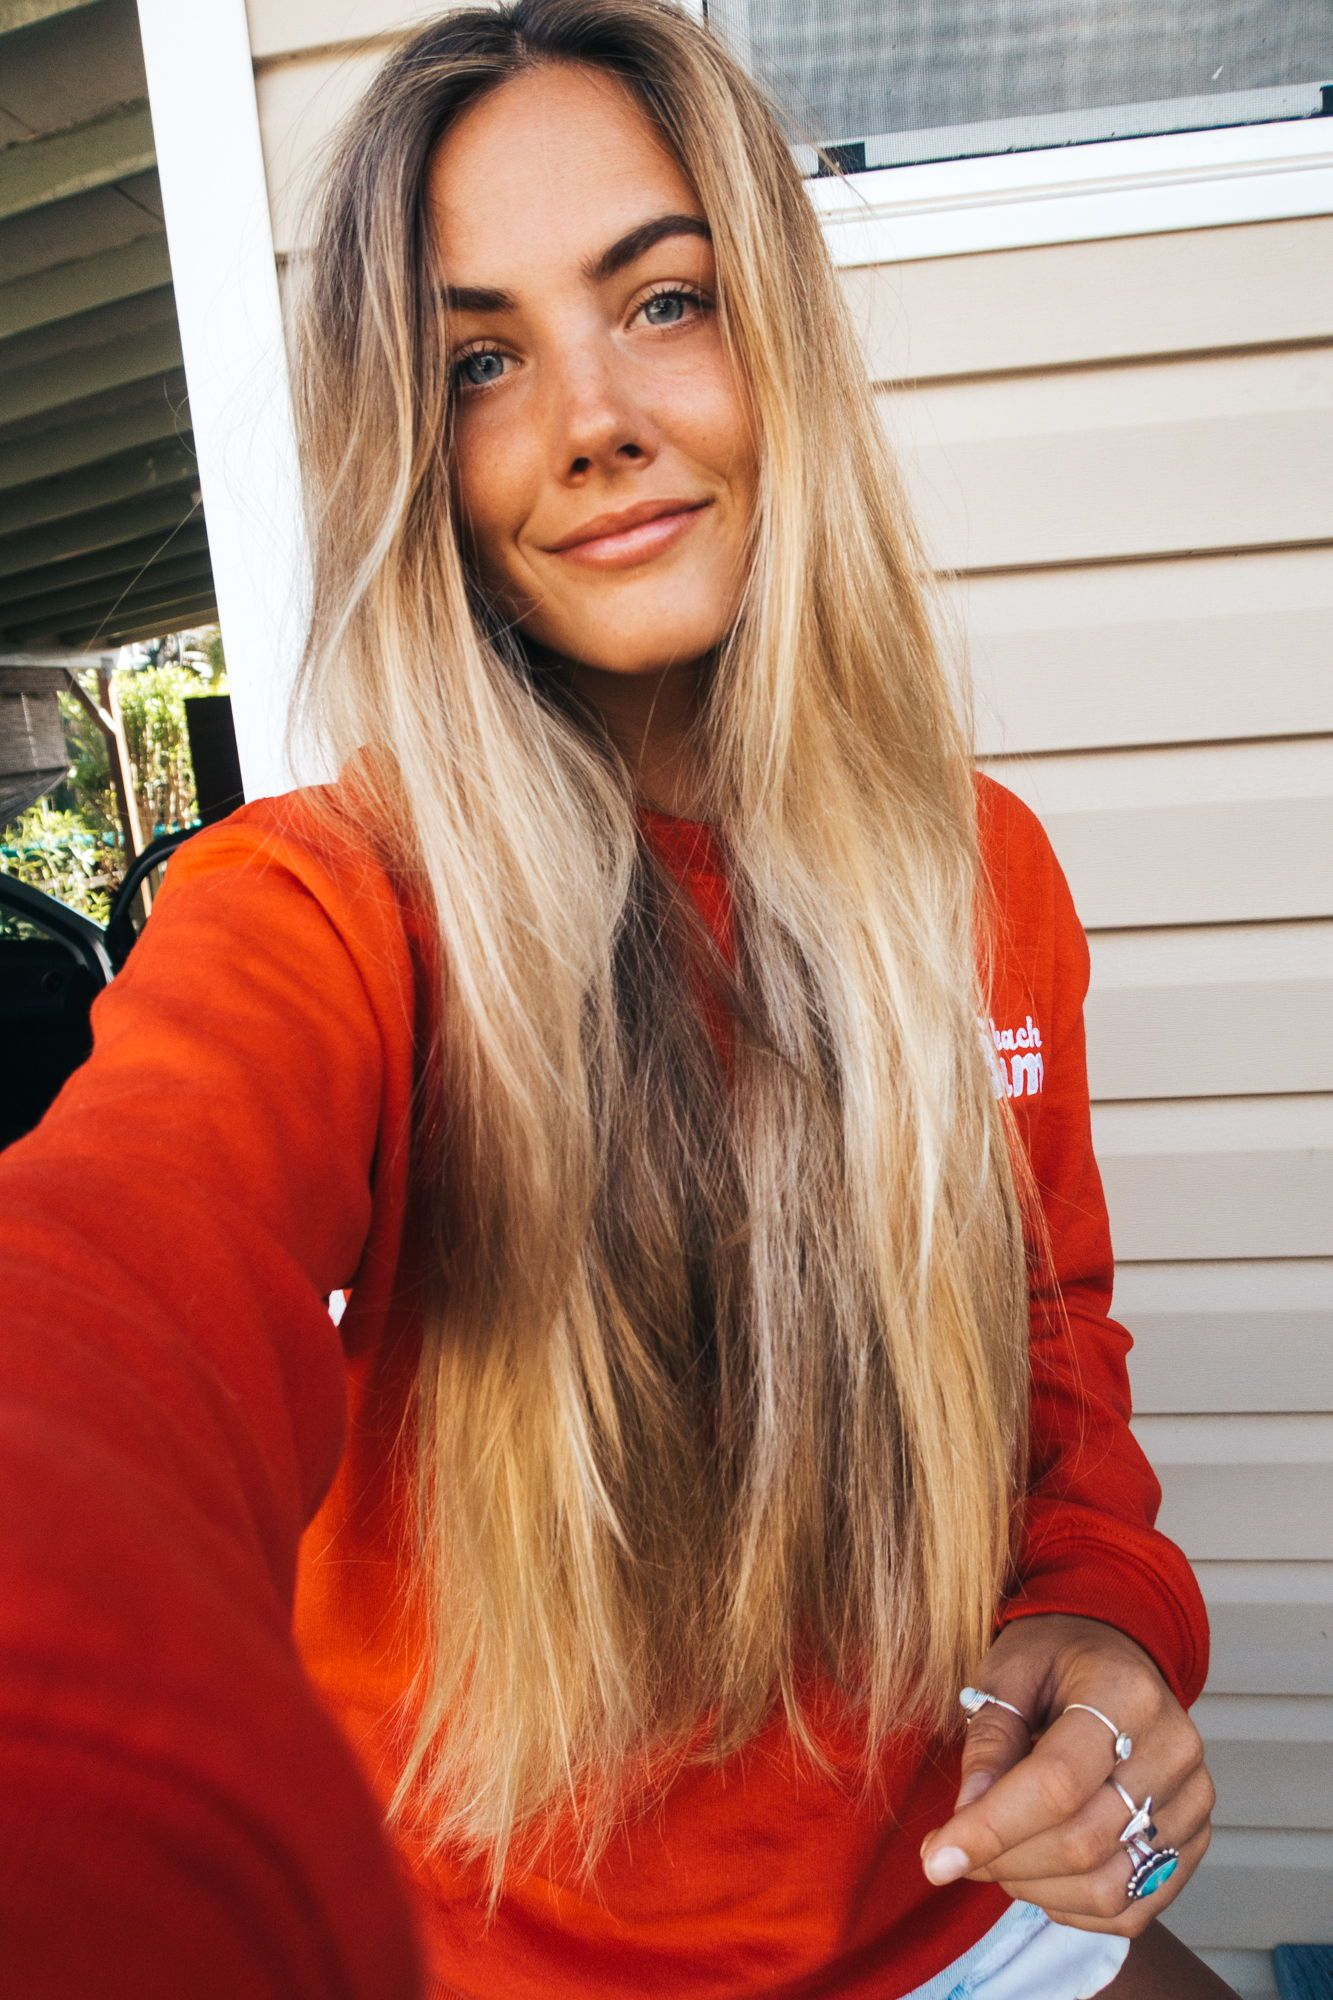 HOW TO GROW LONG HAIR / blonde healthy longhair tips